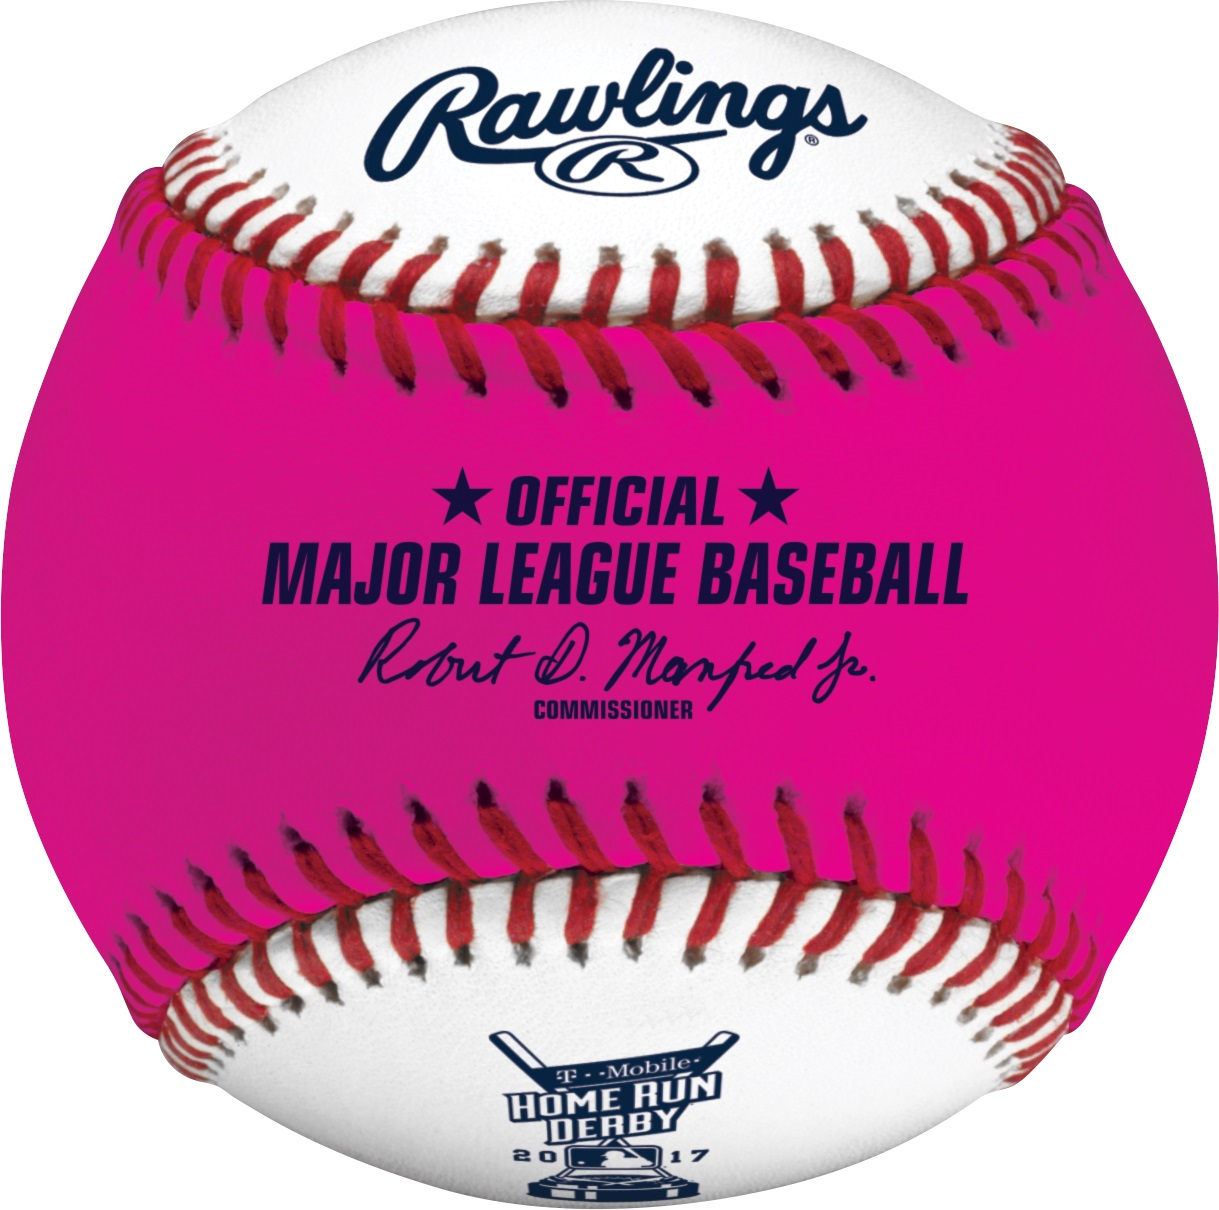 2017 mlb all-star game rawlings pink home run derby moneyball